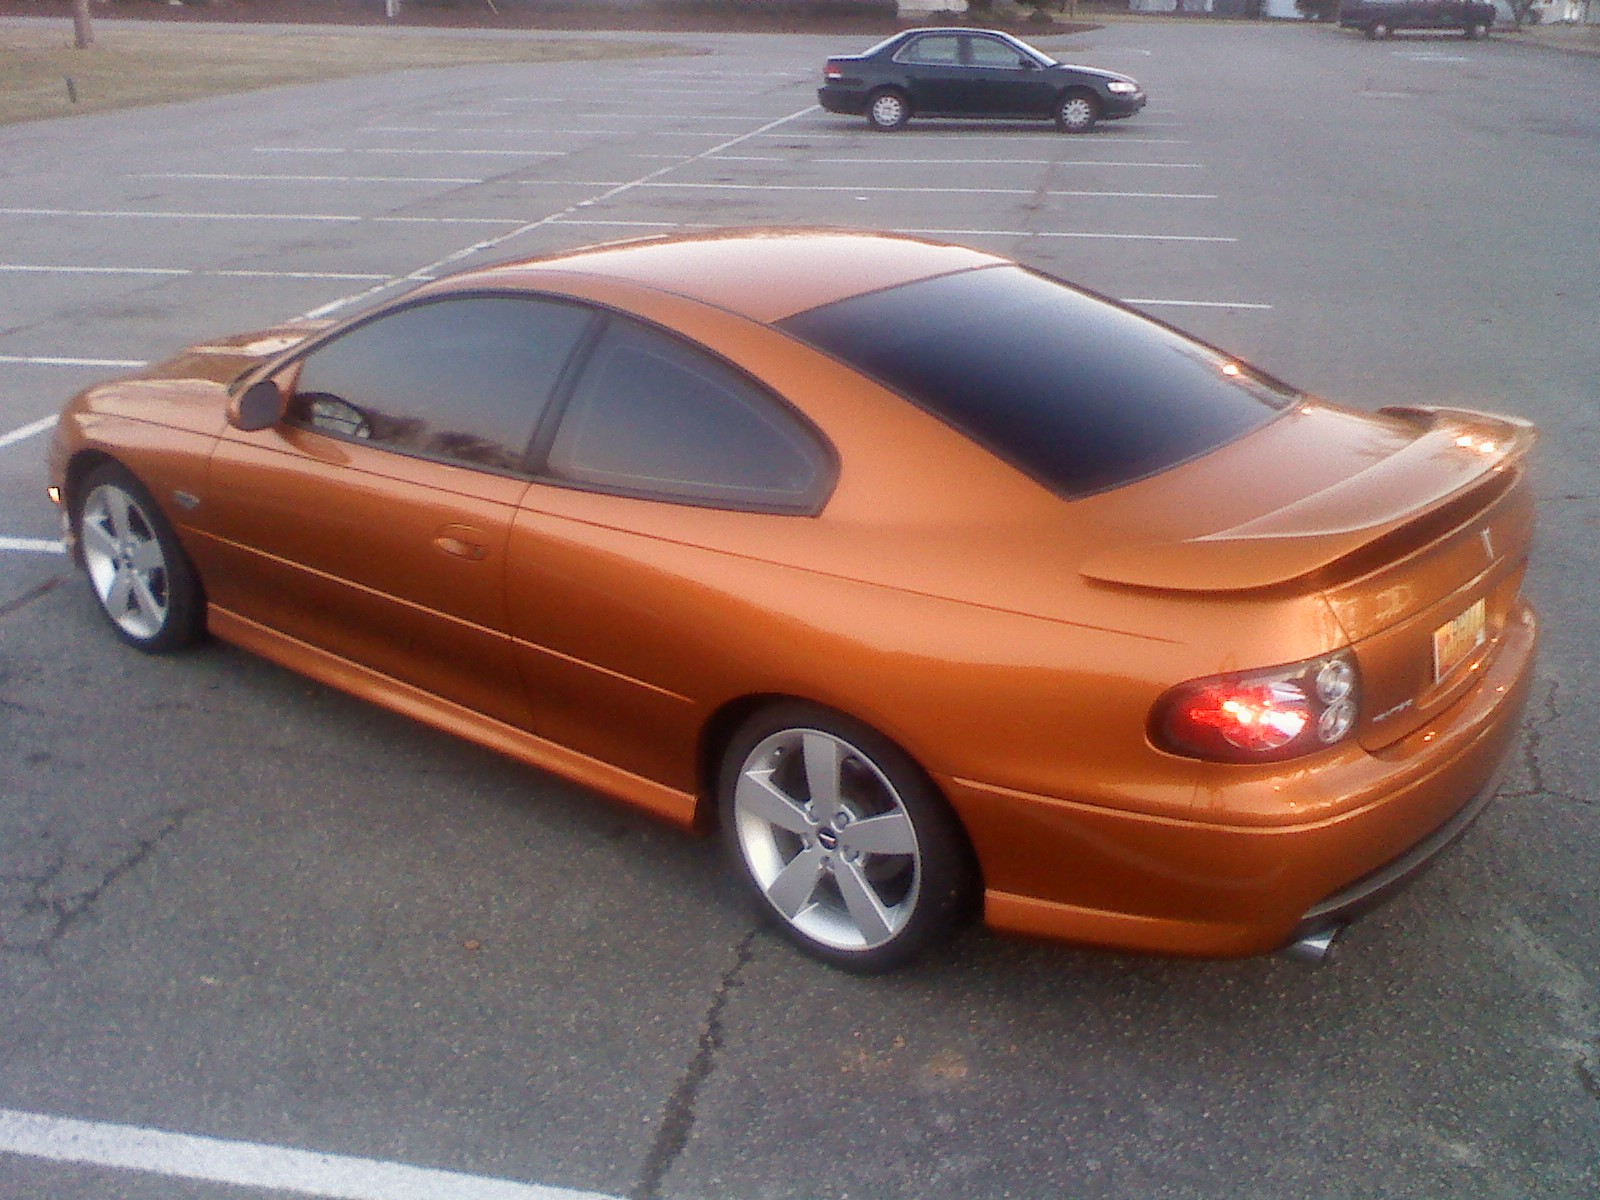 2006 Brazen Orange GTO For Sale-0206091738c.jpg